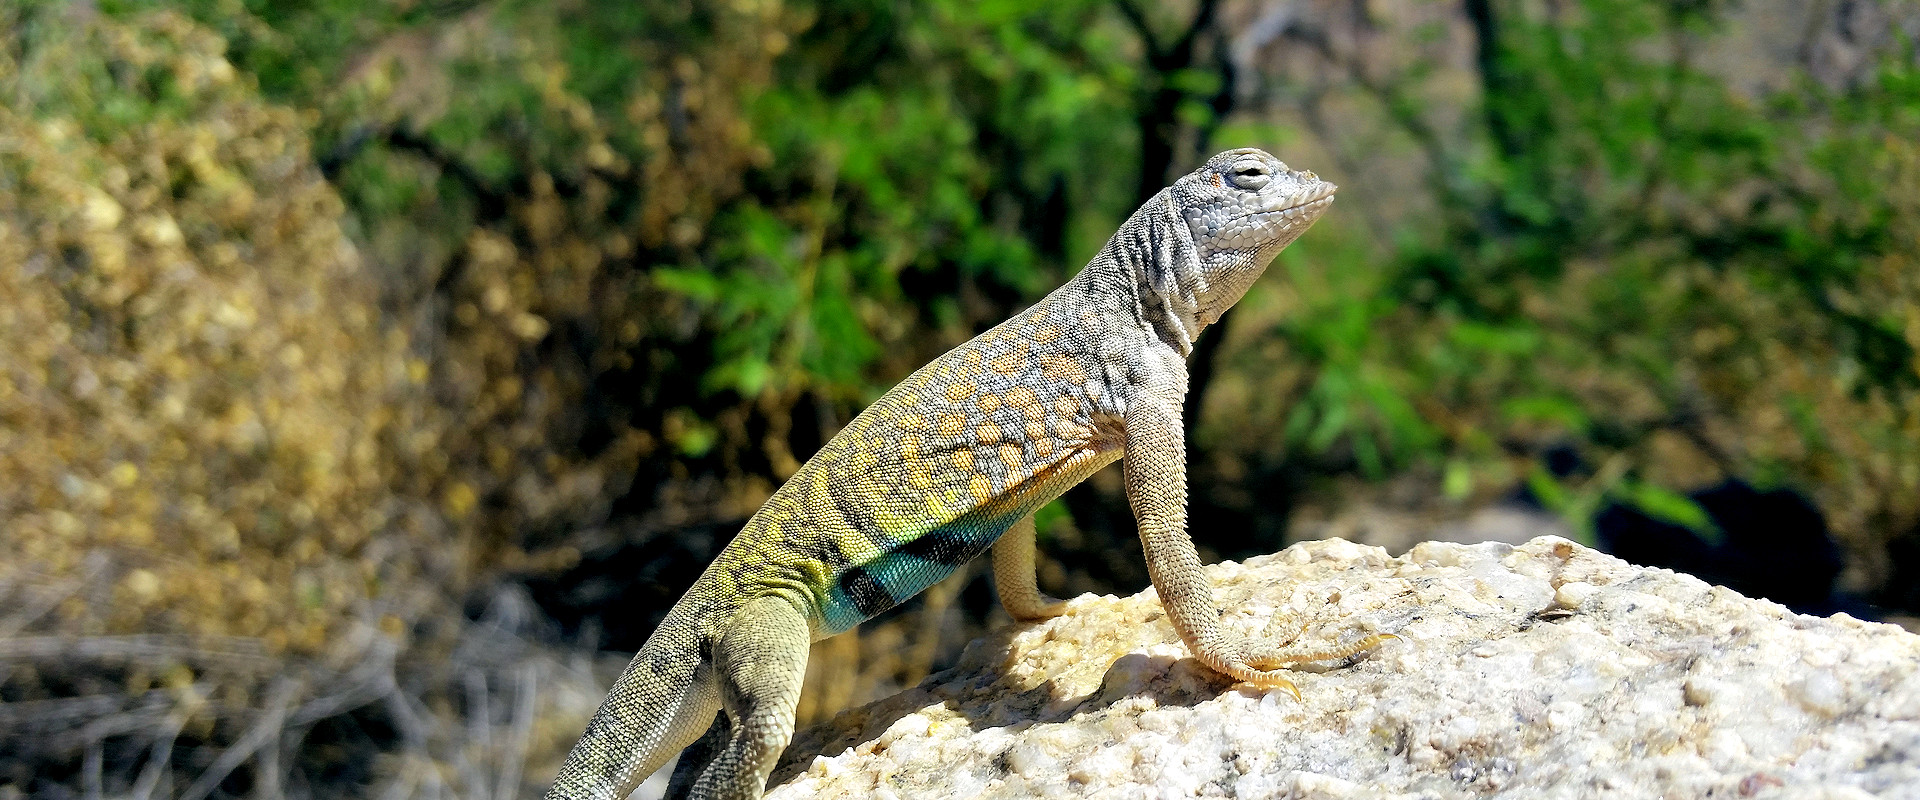 Greater Earless Lizard Photo by Charles Peden psychic medium animal communicator Tucson Arizona